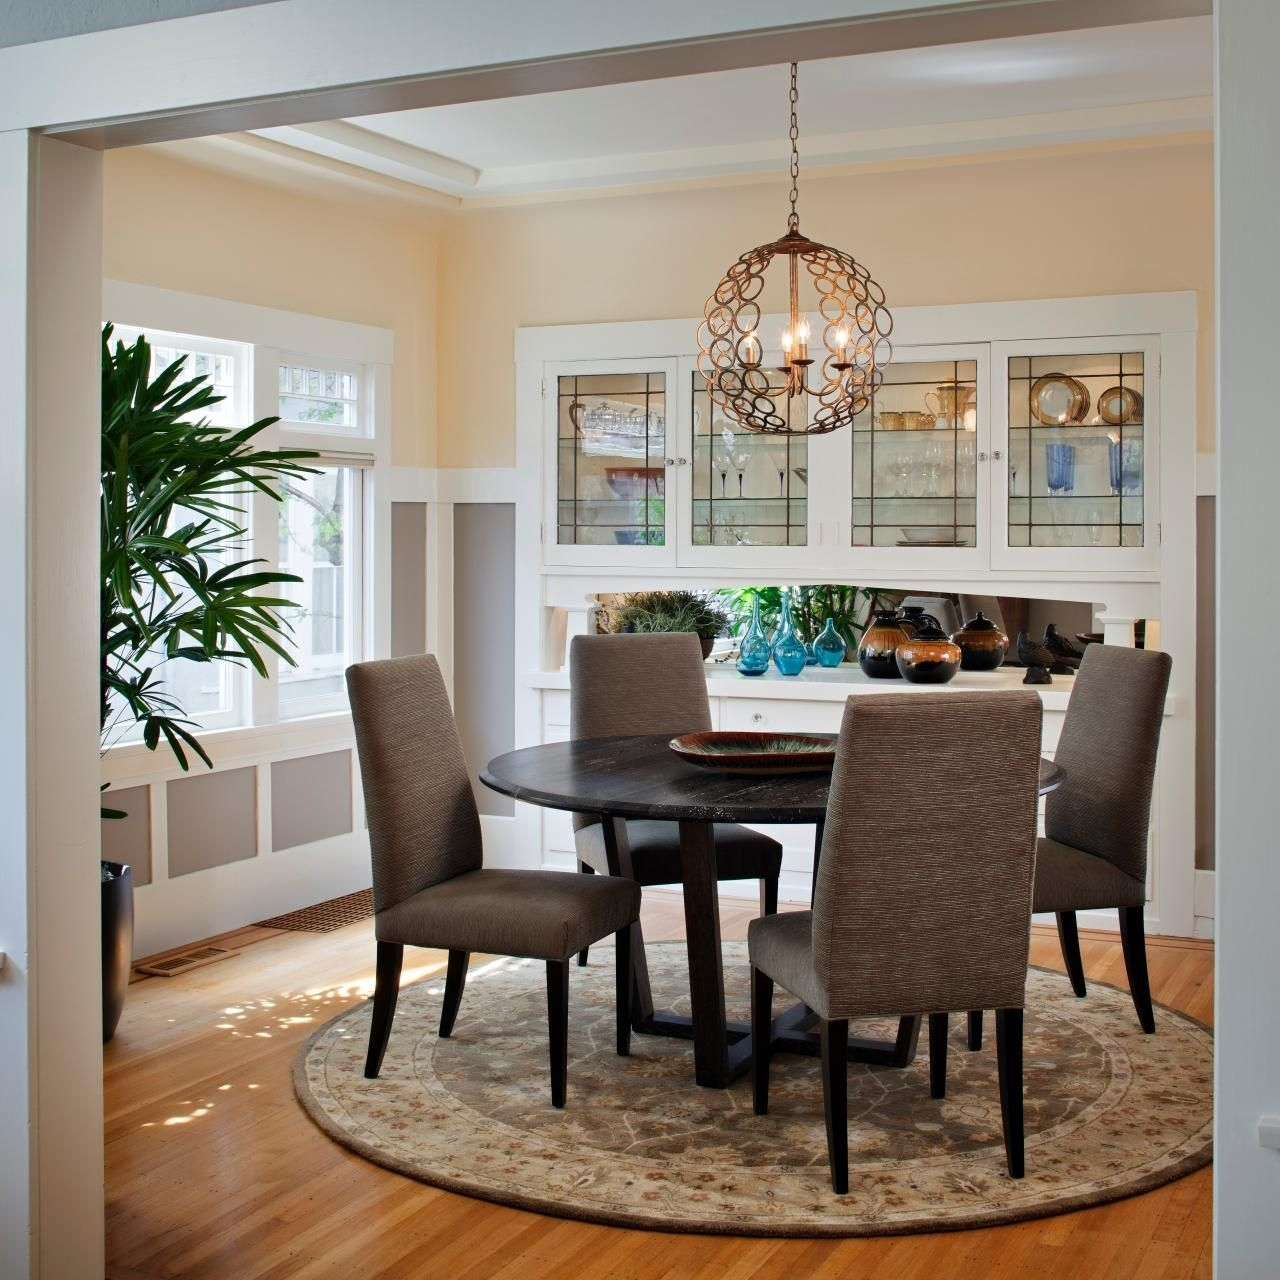 Craftsman Dining Room Design | Ideas For The House | Pinterest Inside Latest Craftsman Round Dining Tables (Image 2 of 20)